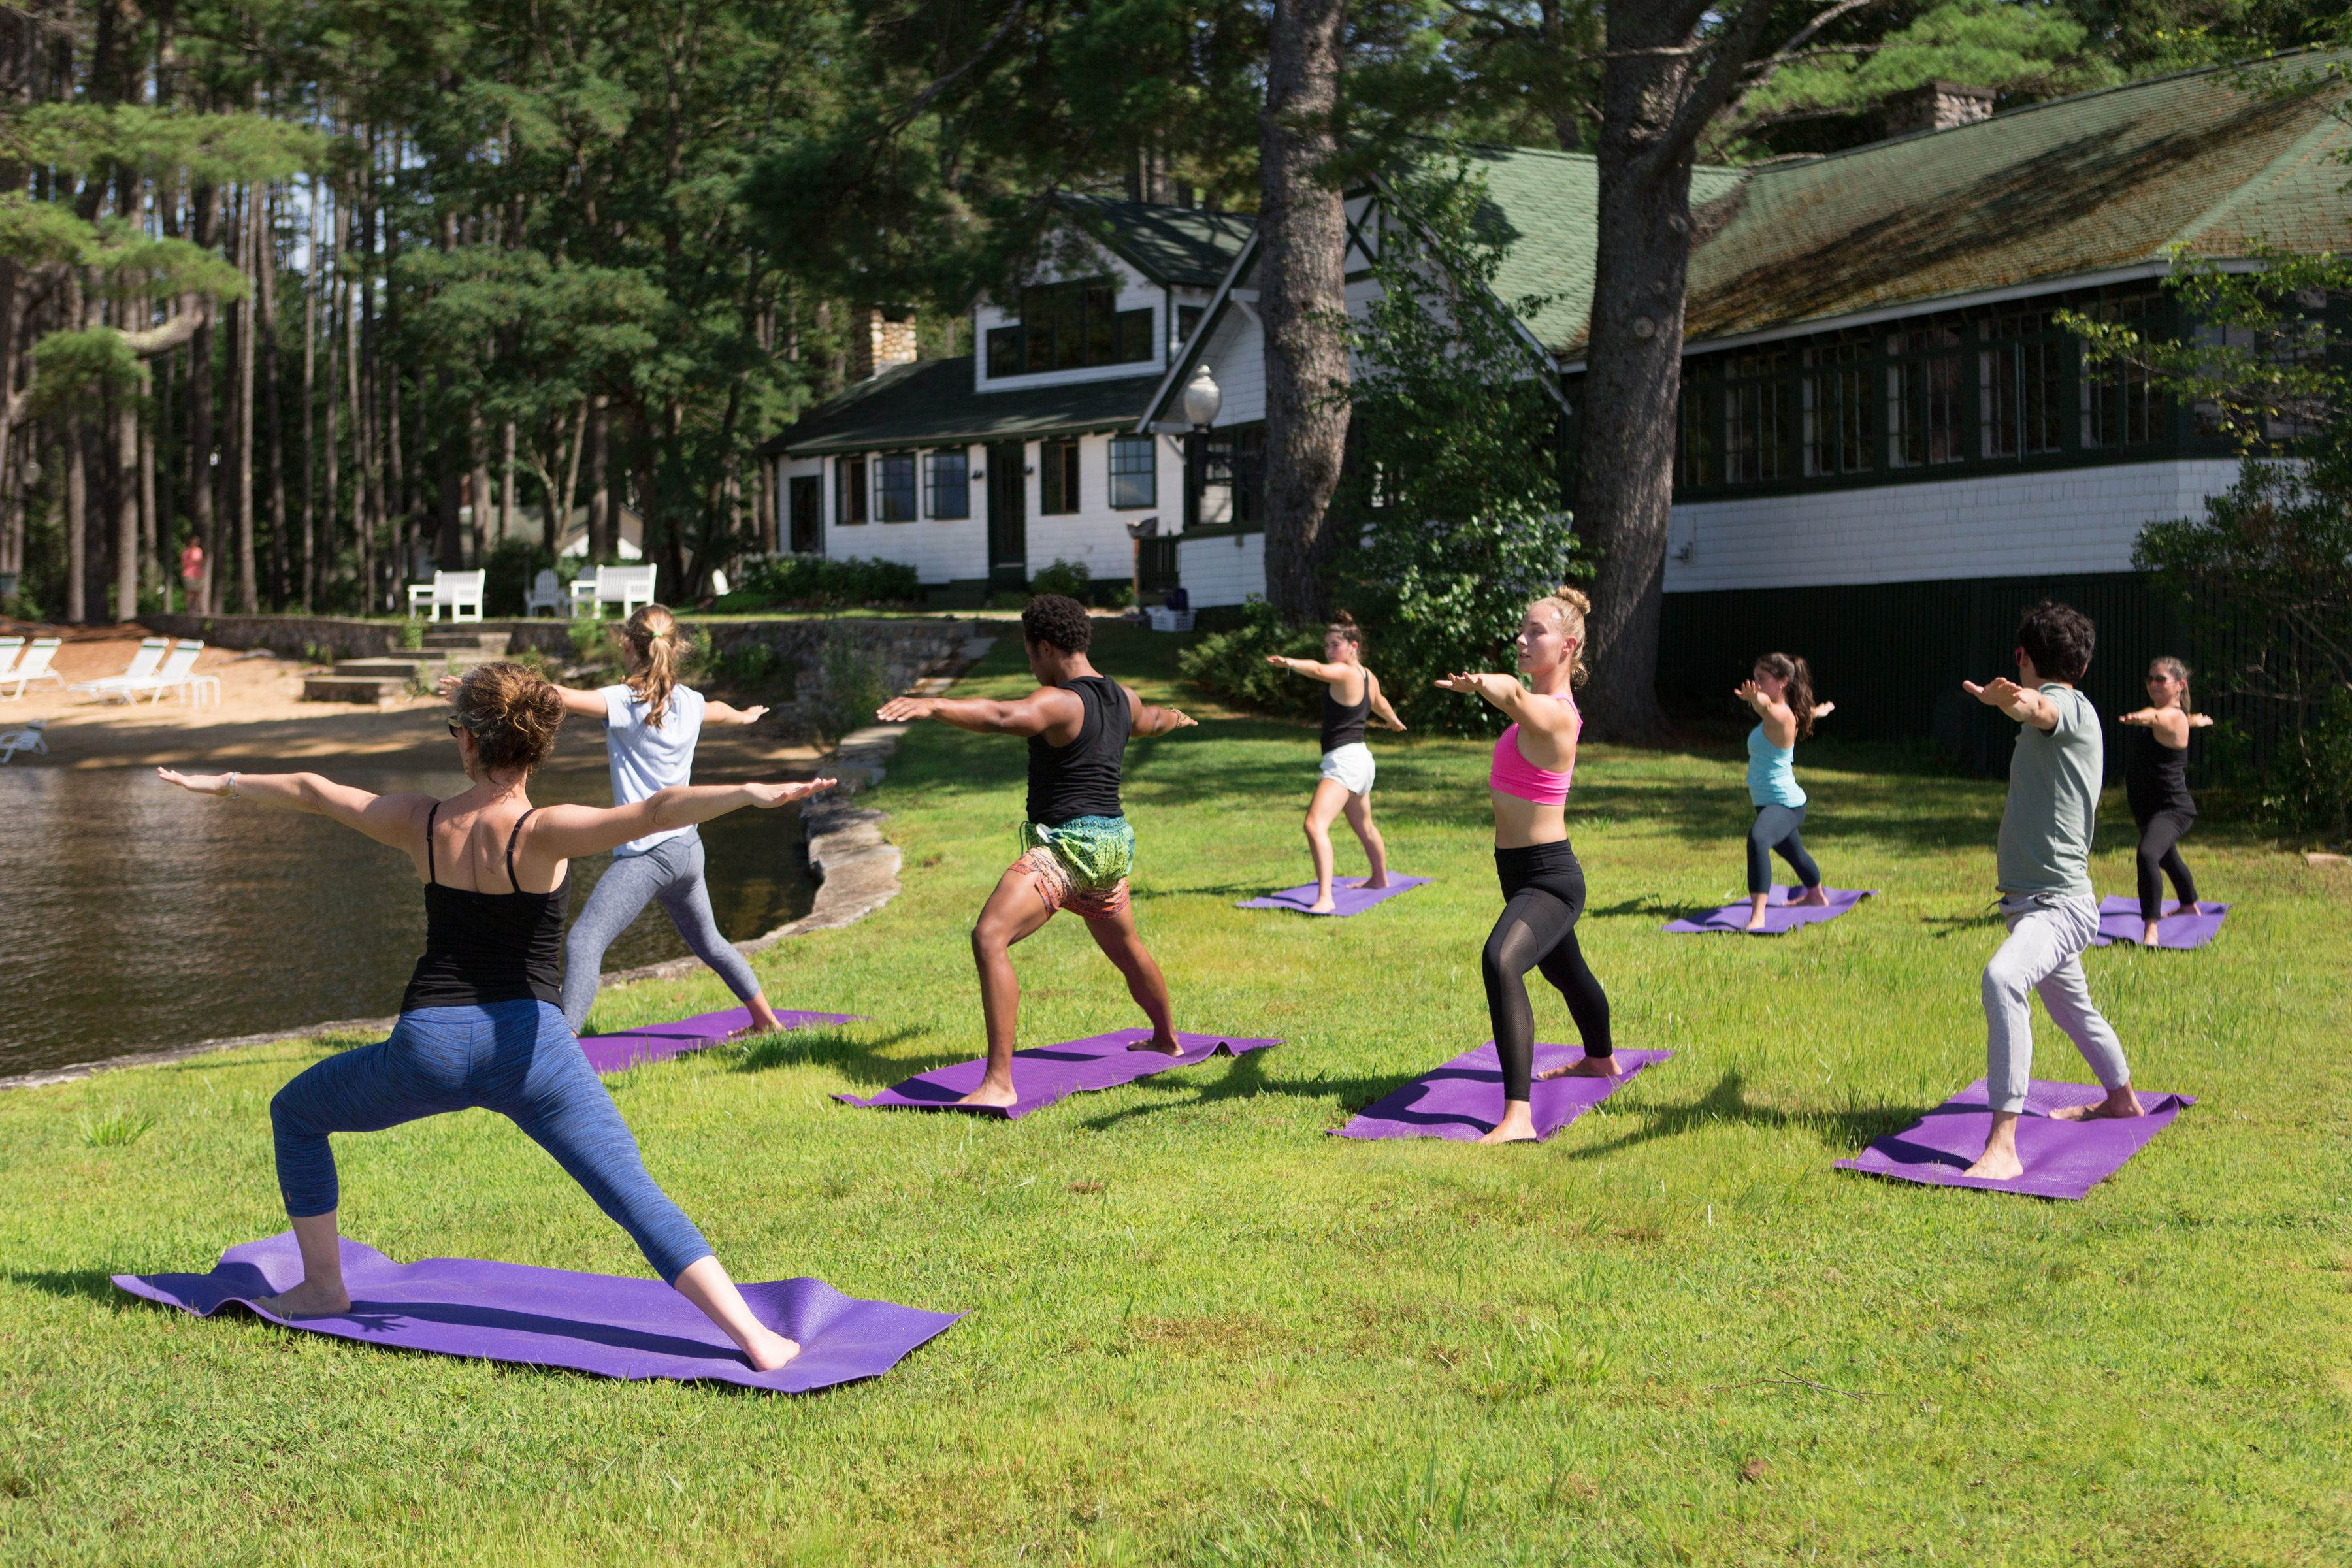 Group yoga on the grass